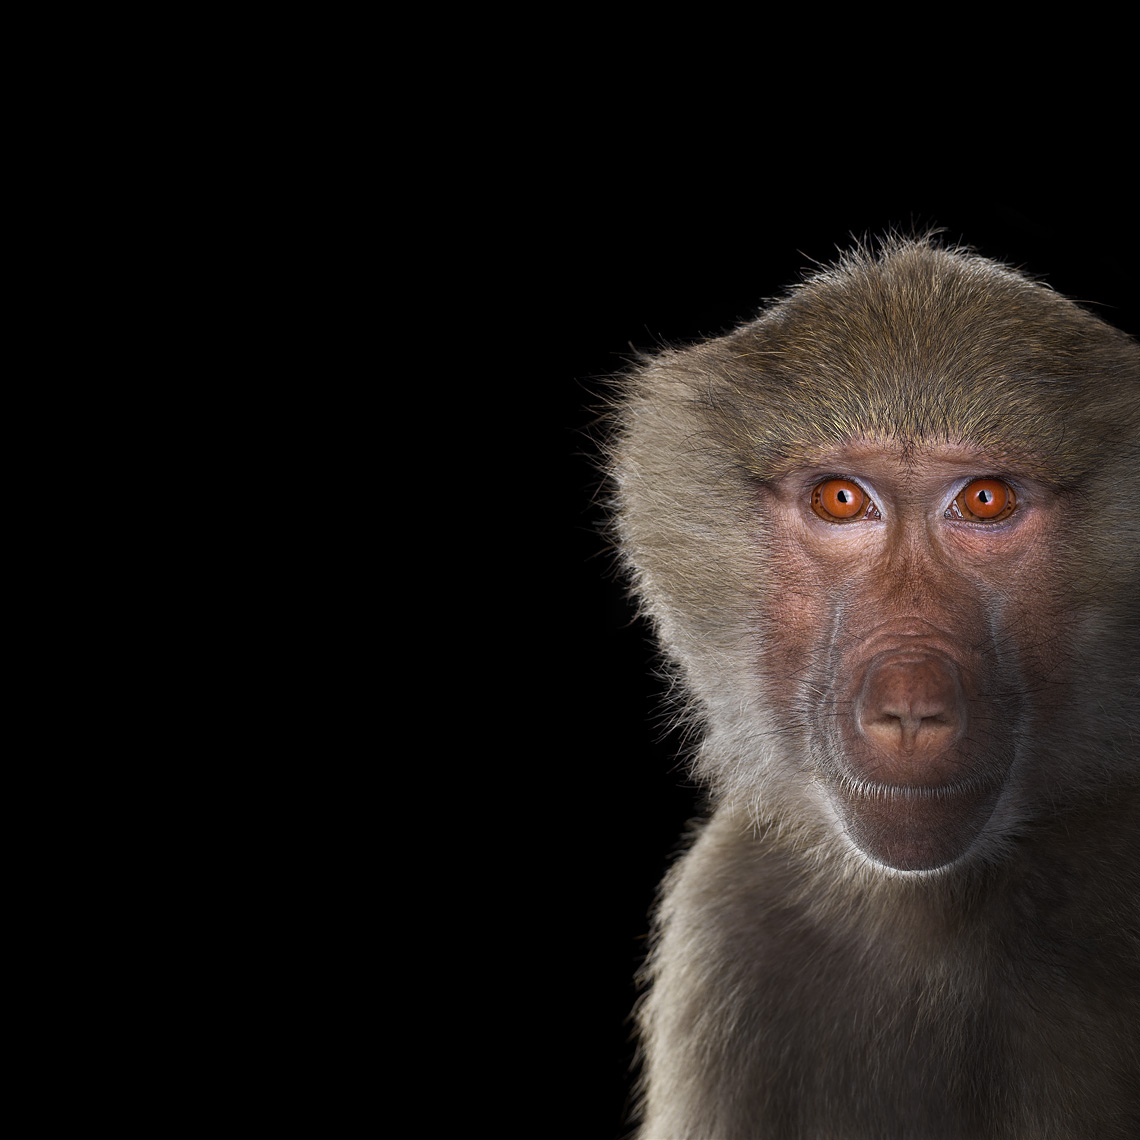 Baboon studio portrait by animal photographer Brad Wilson